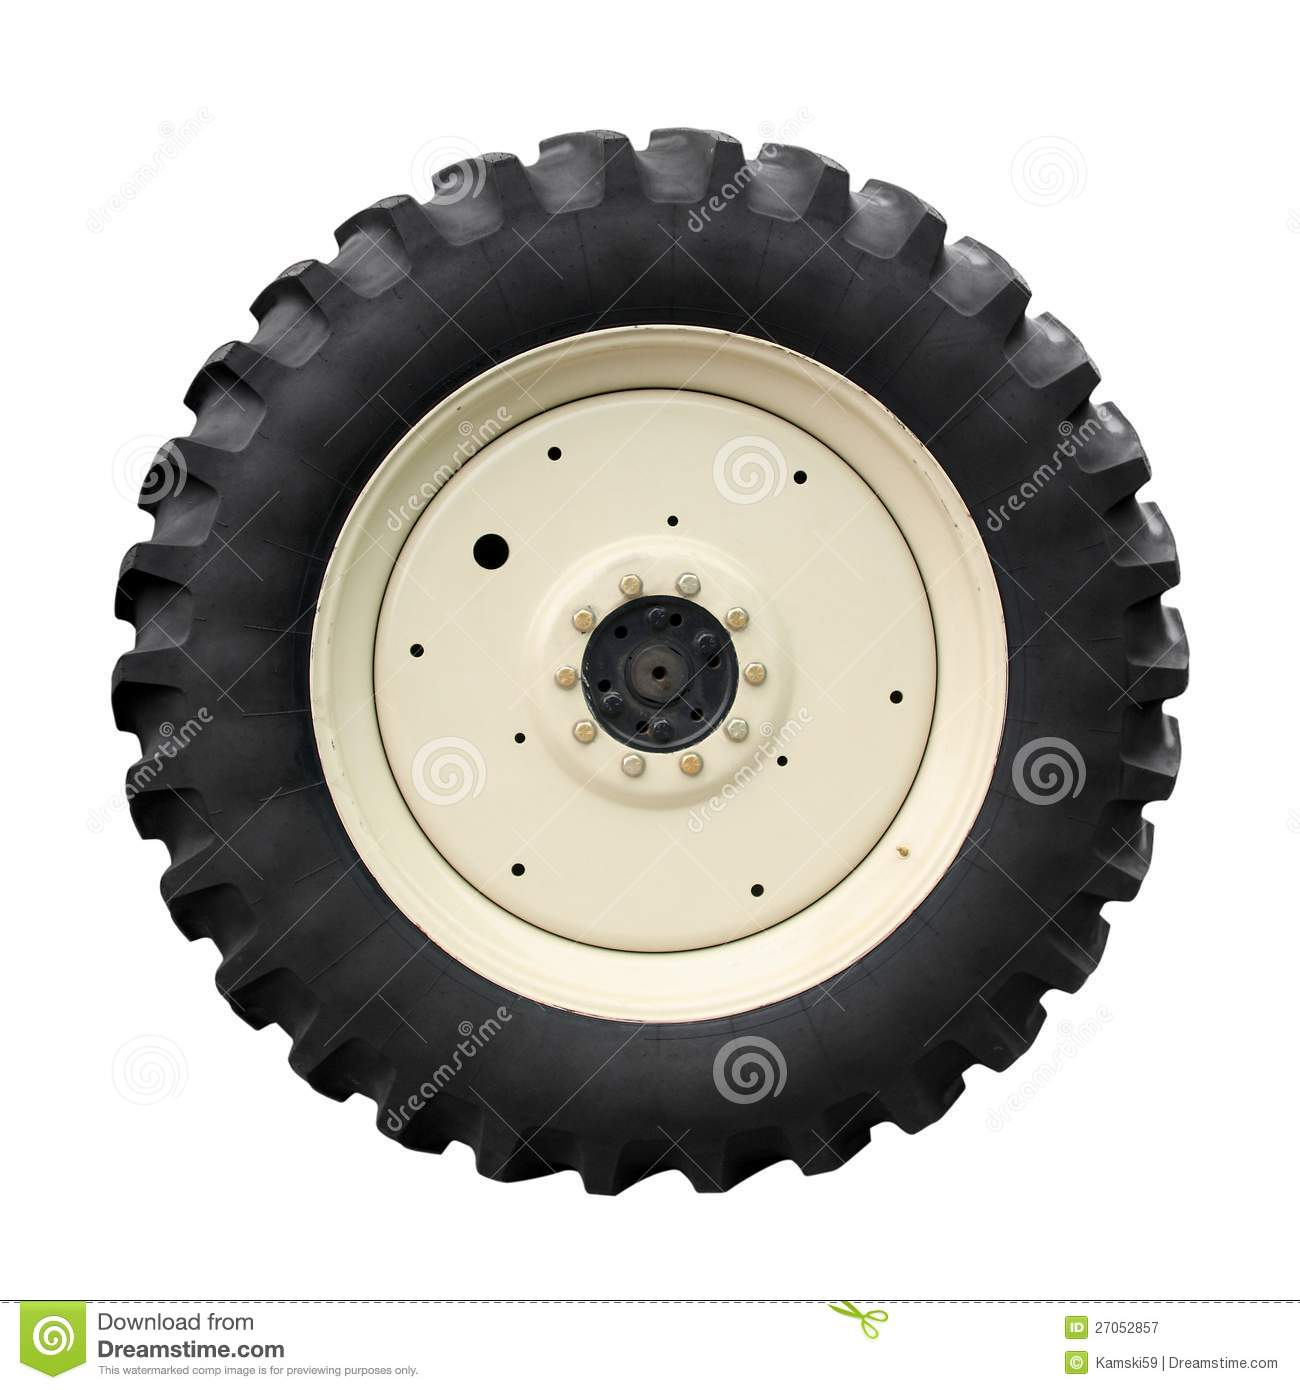 Tractor tire royalty free stock photography image 27052857 for Big tractor tires for free